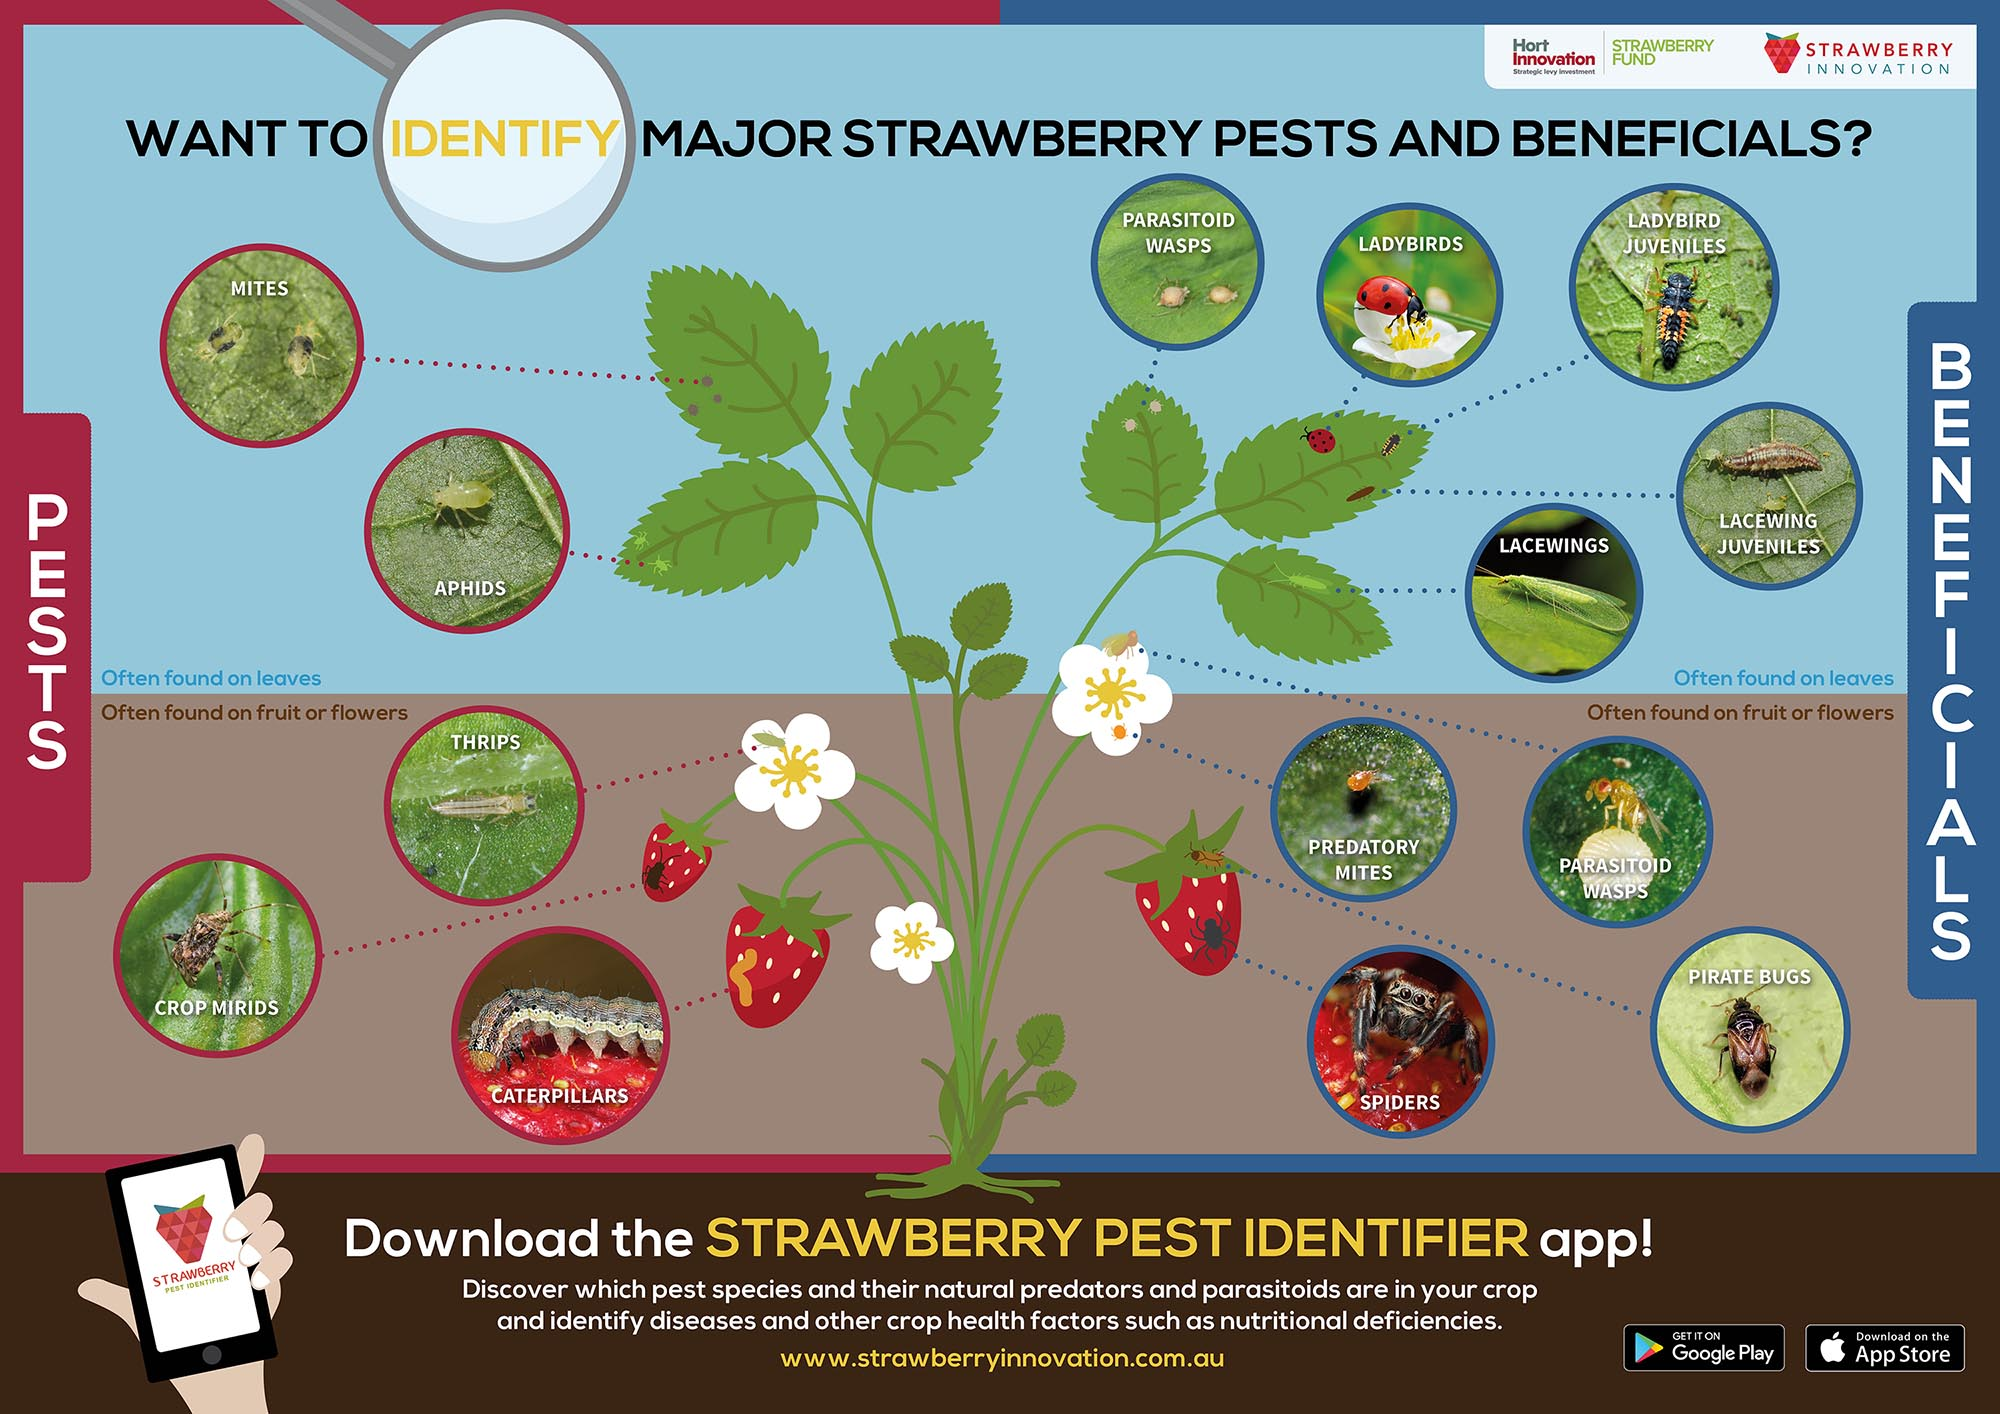 FINAL Strawberry Pests and Beneficials - WEB